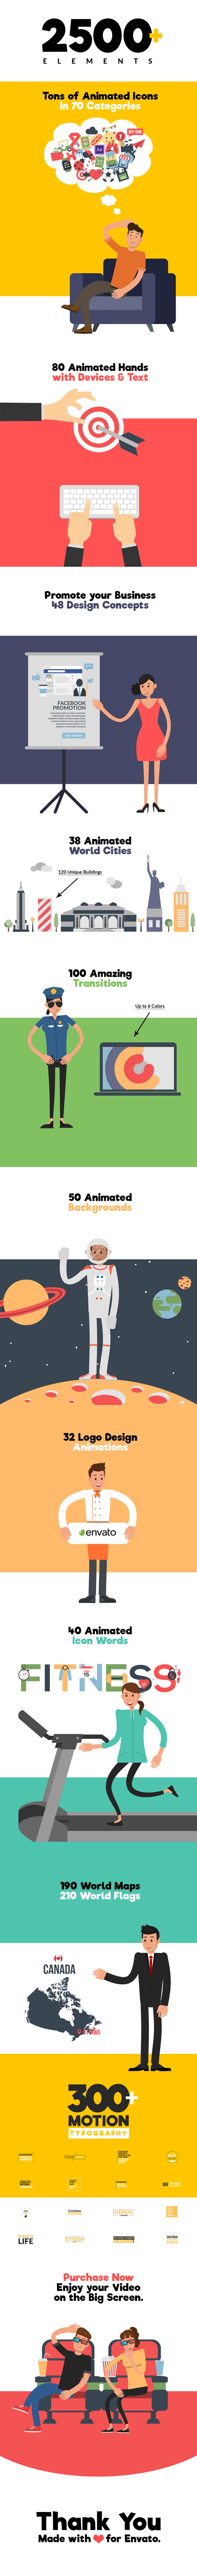 Story Now | Character Animation Explainer Toolkit - 6